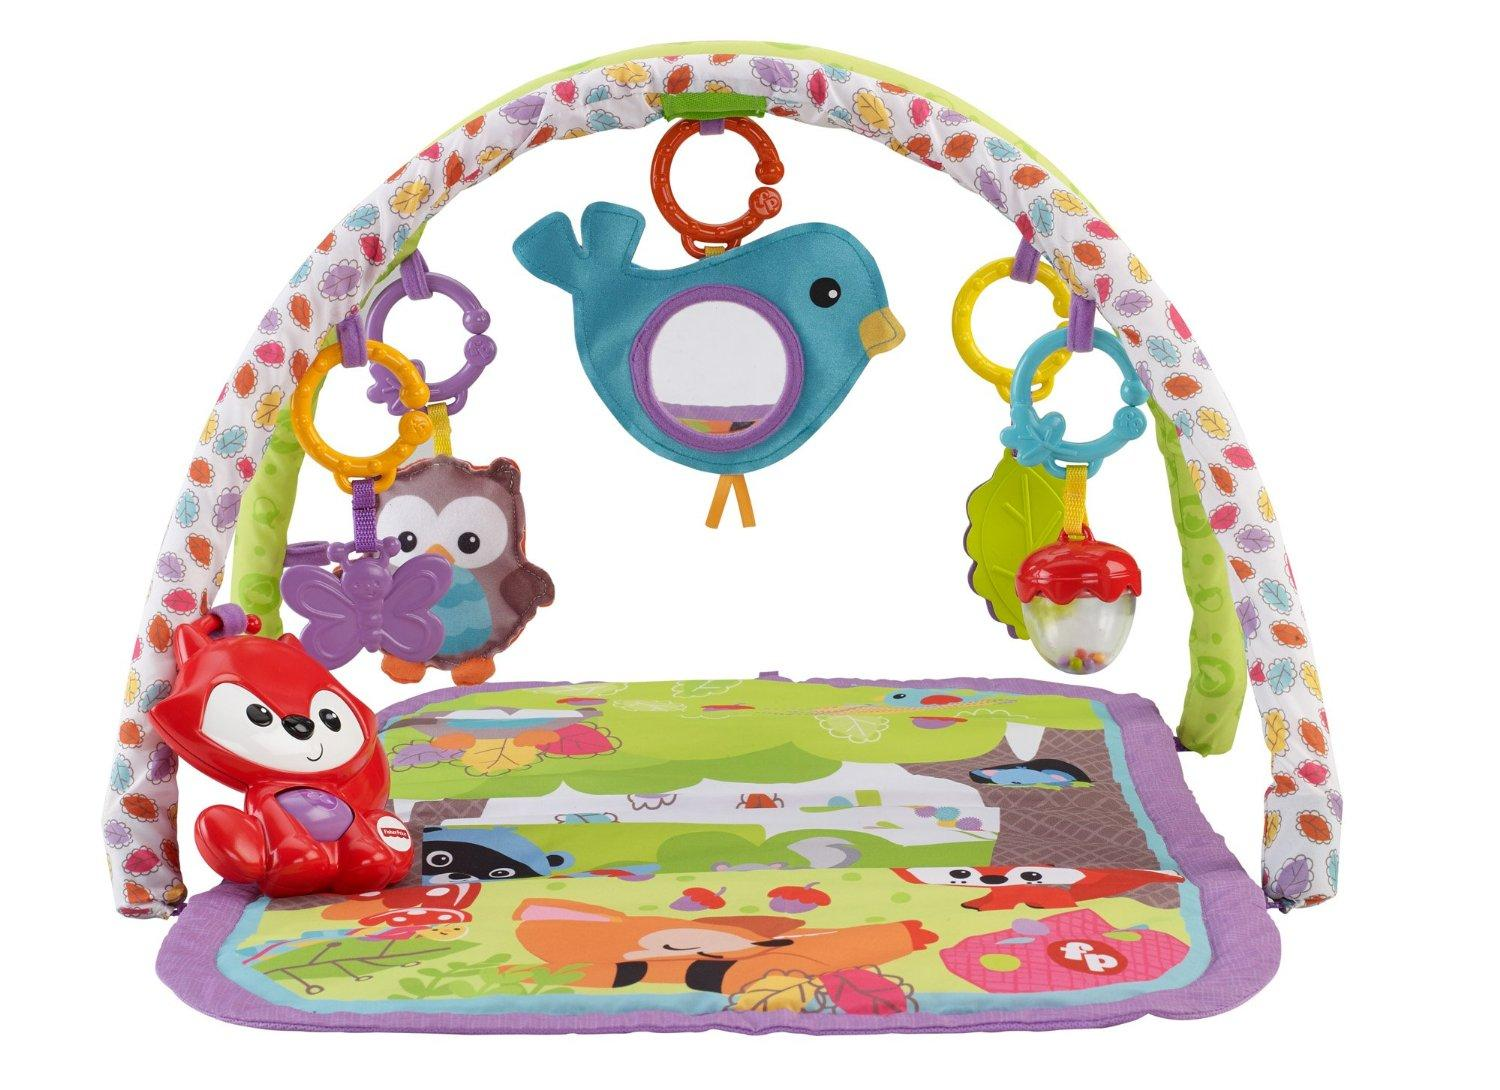 Amazon Com Fisher Price 3 In 1 Musical Activity Gym Baby